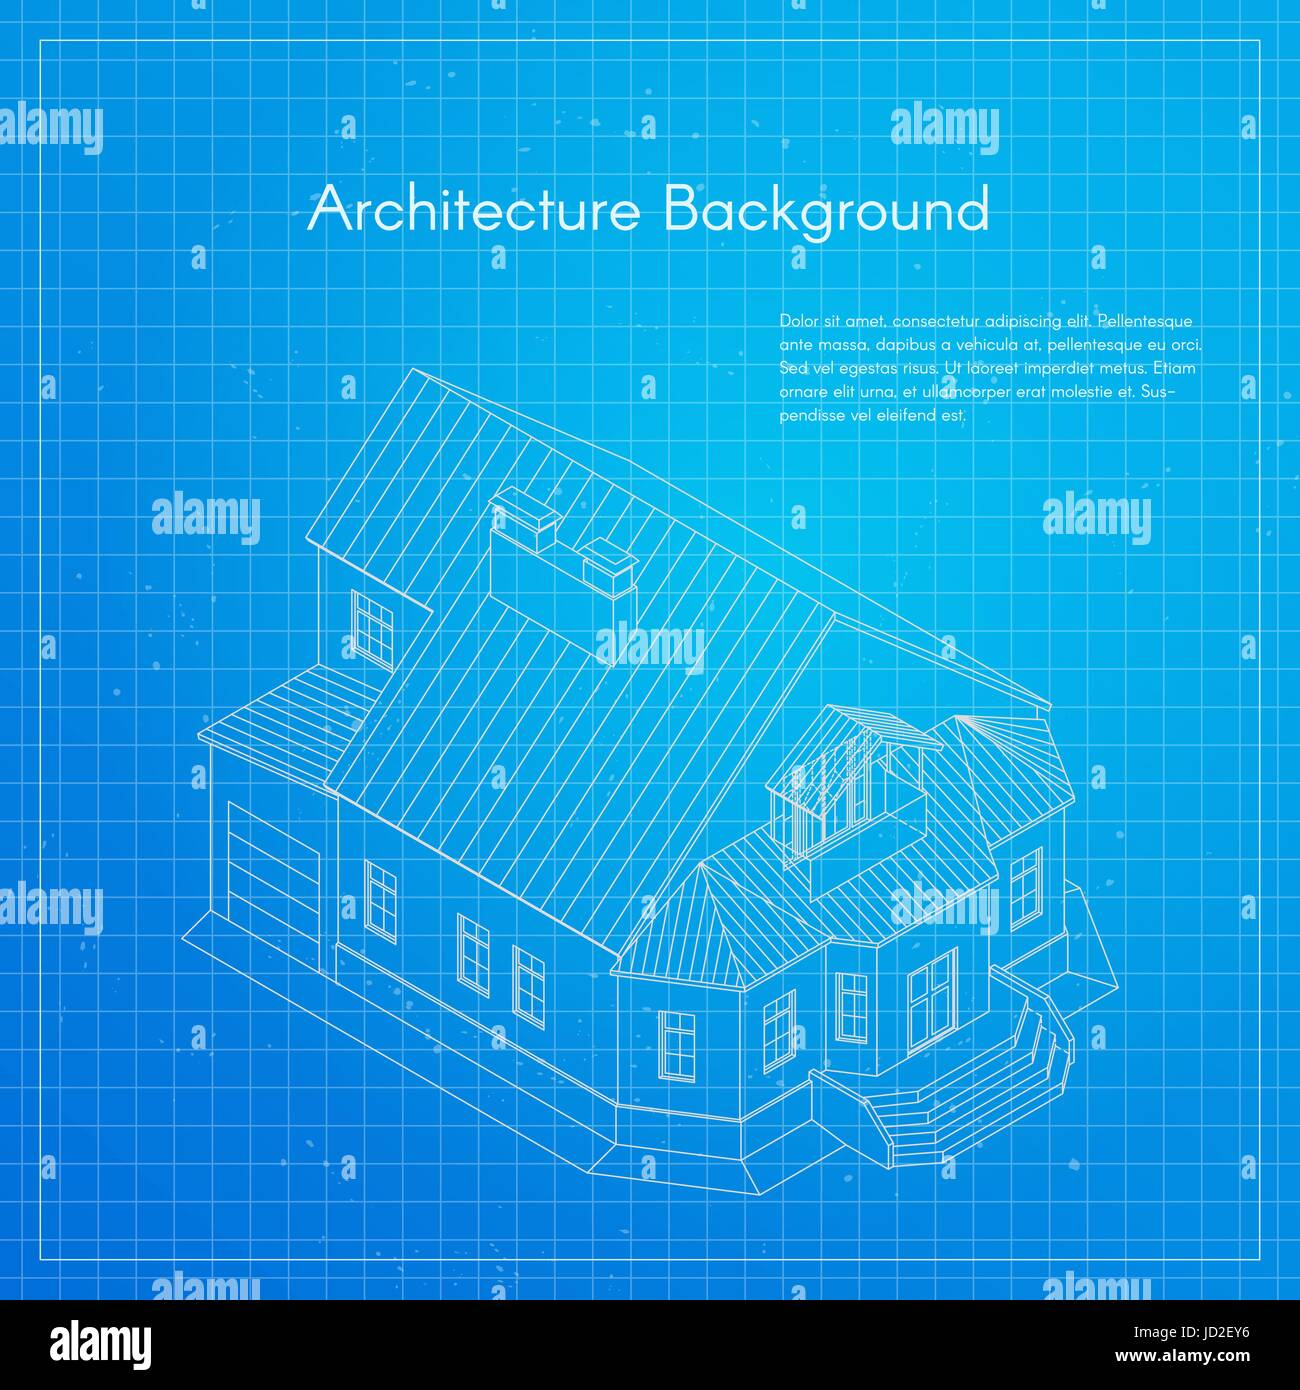 Vector illustration of city building blueprint architectural vector illustration of city building blueprint architectural background or project malvernweather Images